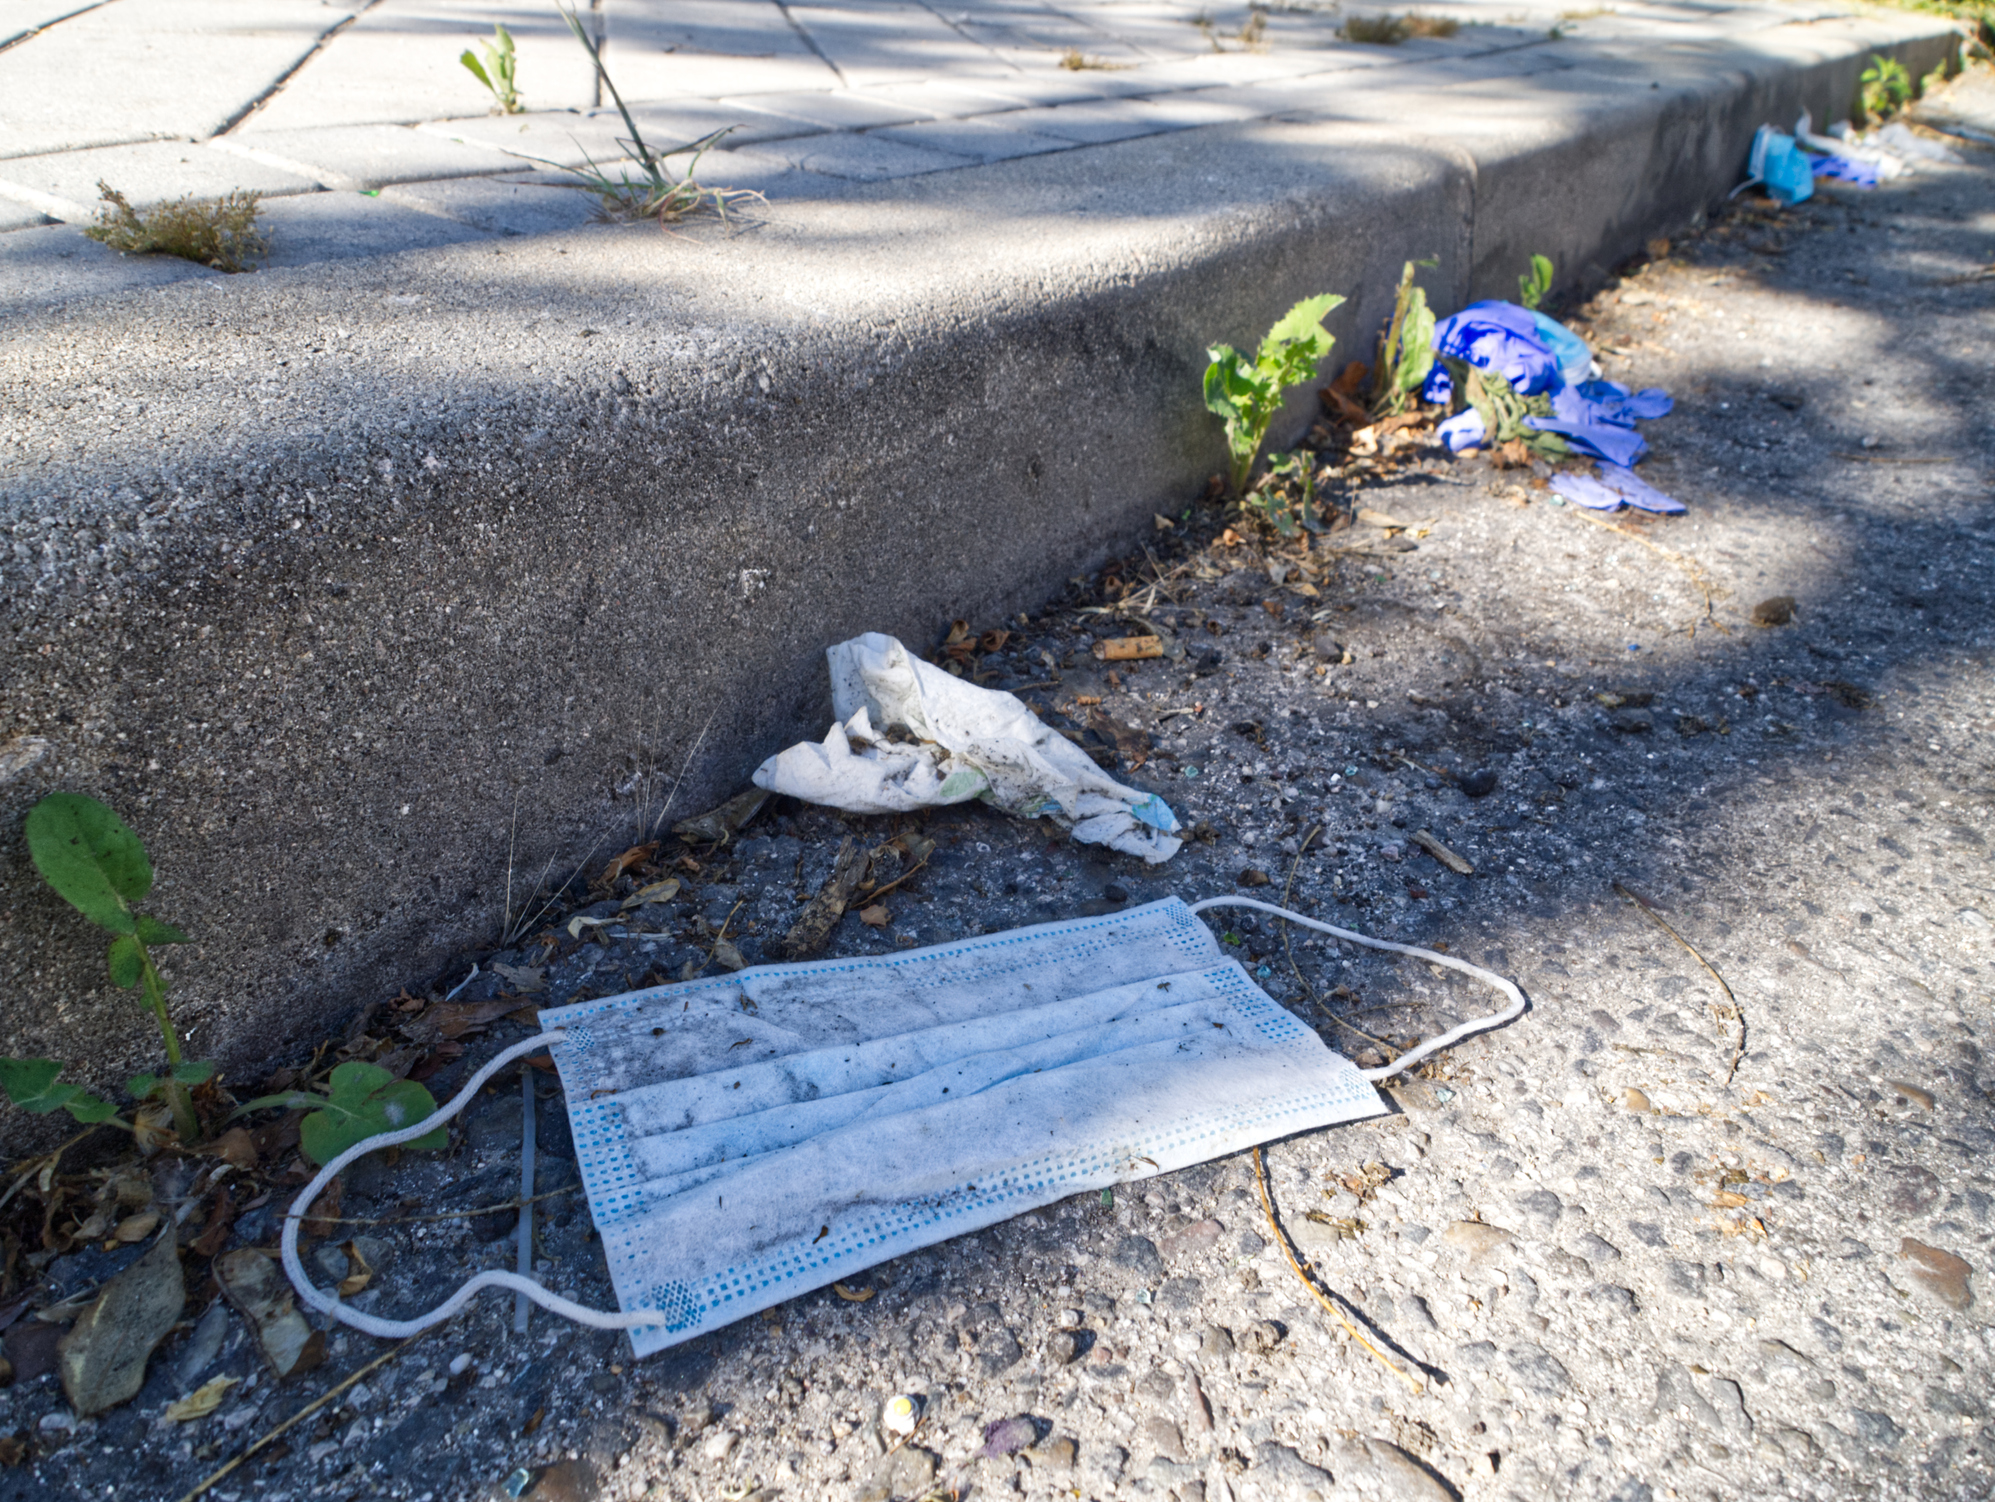 'It's really disgusting': Sydney council cracks down on PPE debris